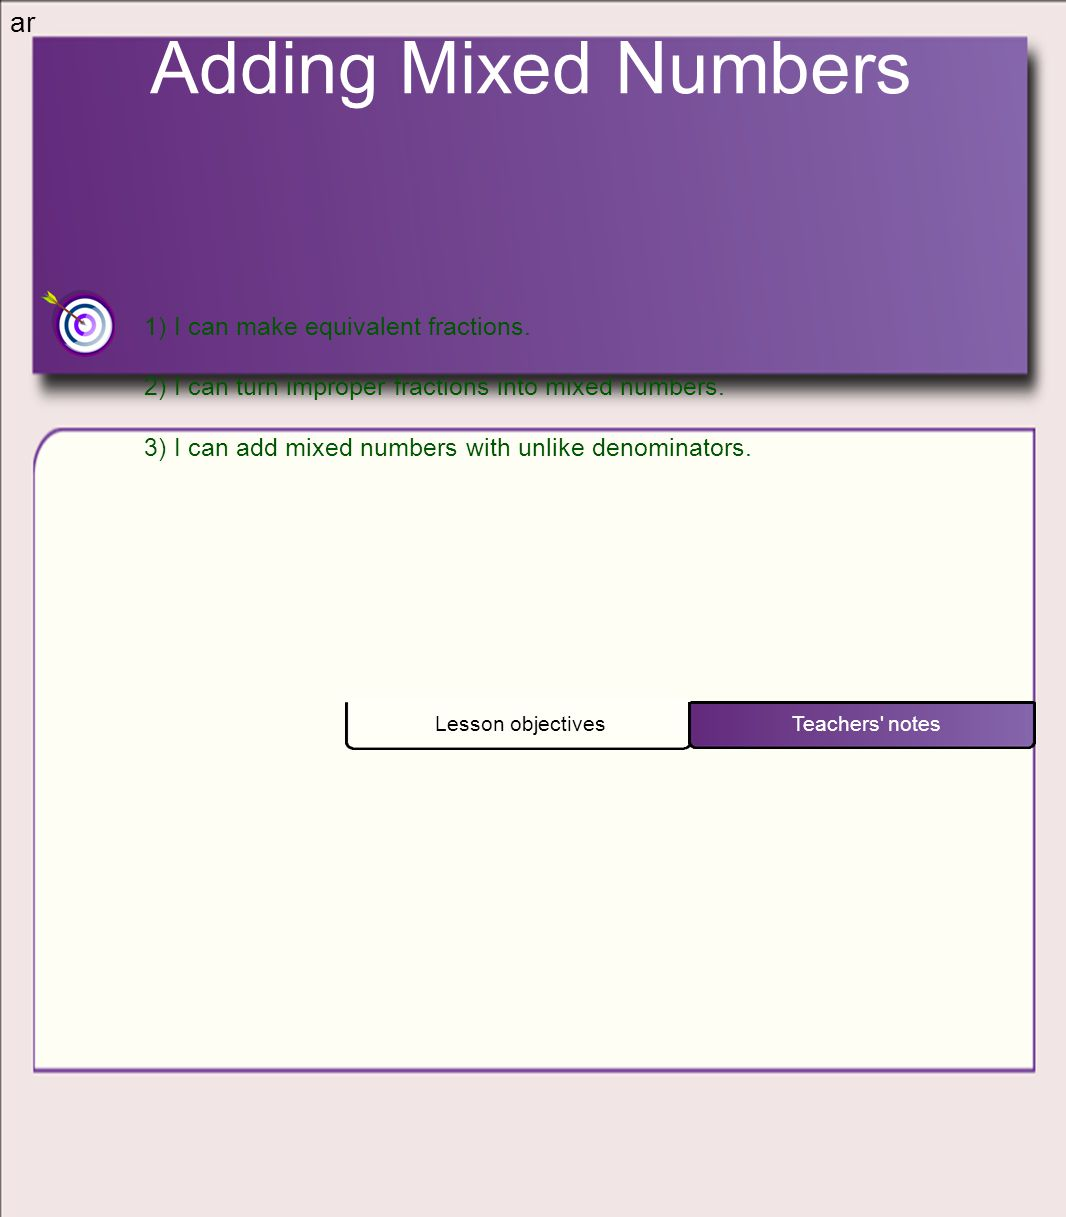 Adding Mixed Numbers Ar 1 I Can Make Equivalent Fractions